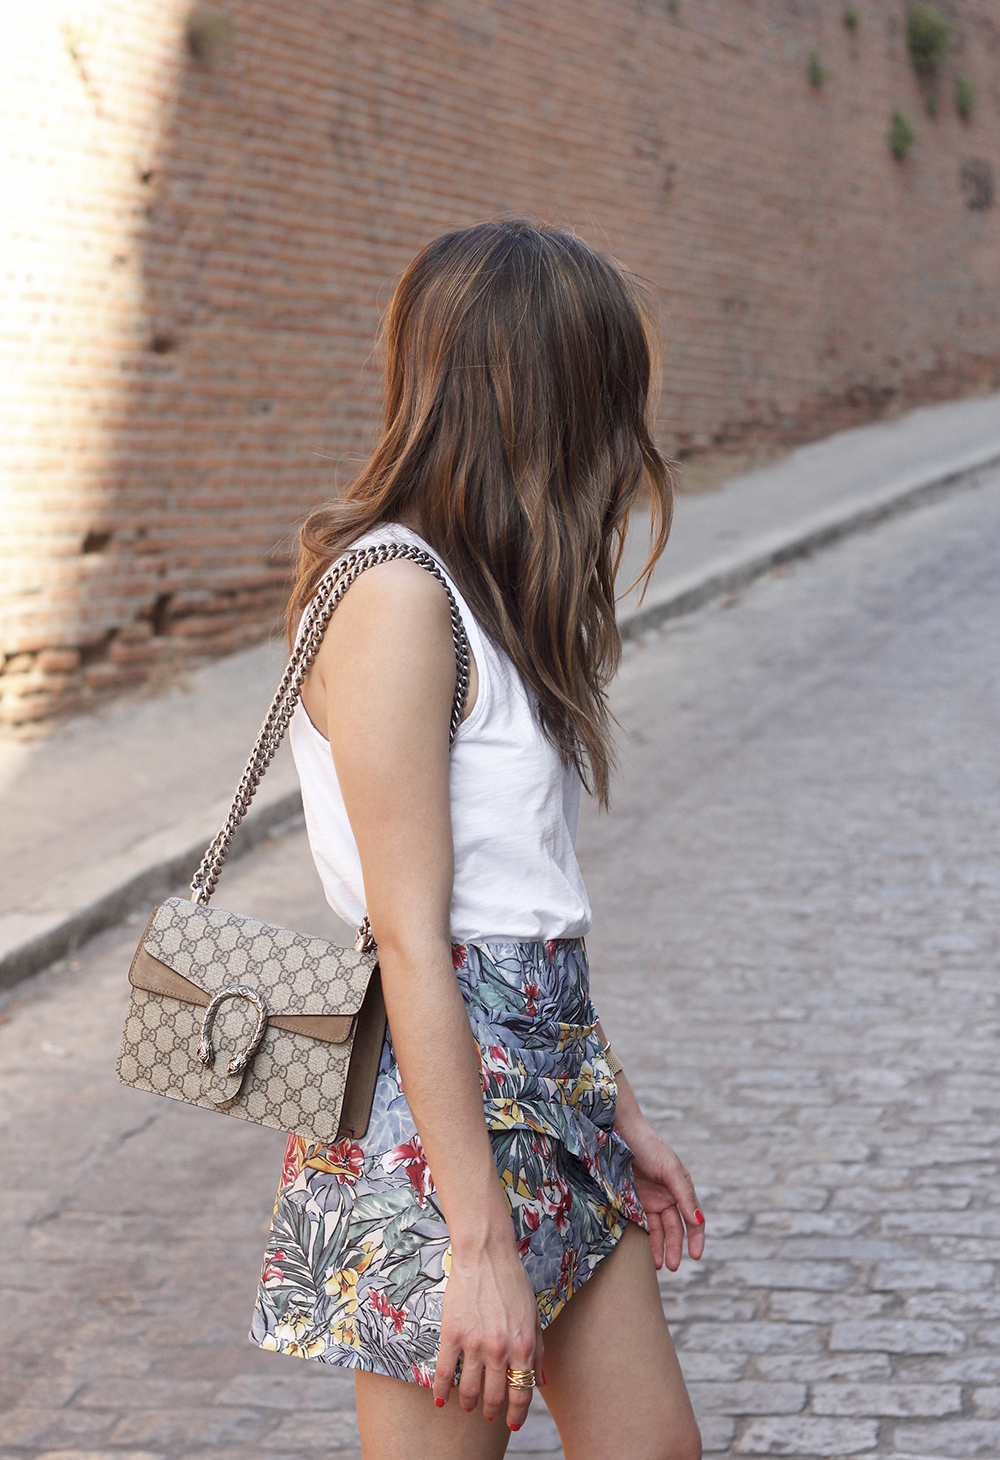 Tropical Skirt gucci bag superga outfit style summer13